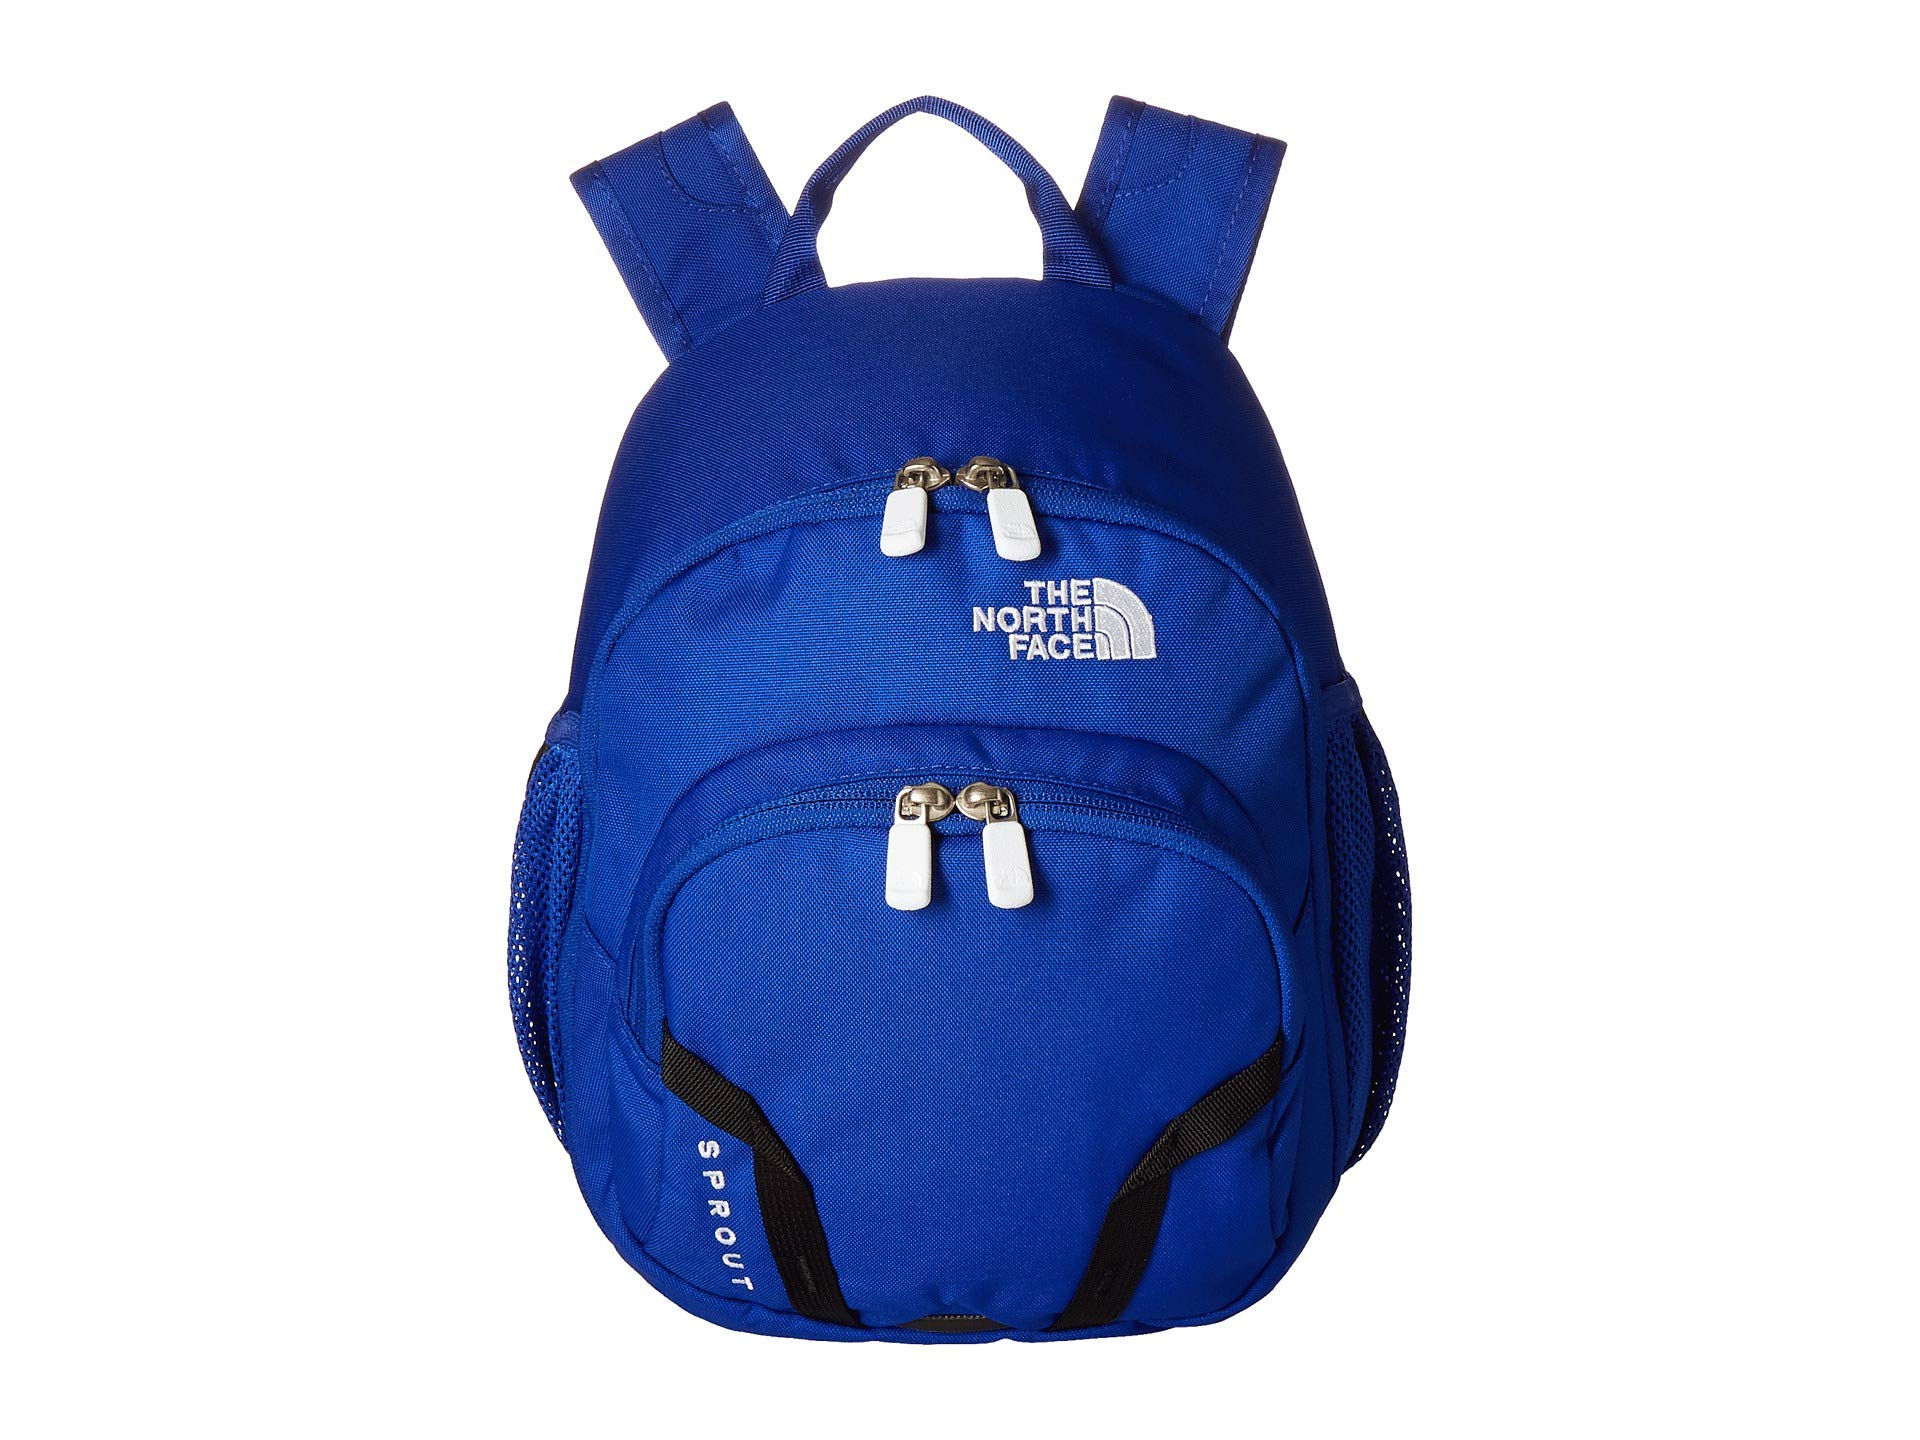 The North Face Youth Sprout, TNF Blue/TNF Black, OS by The North Face